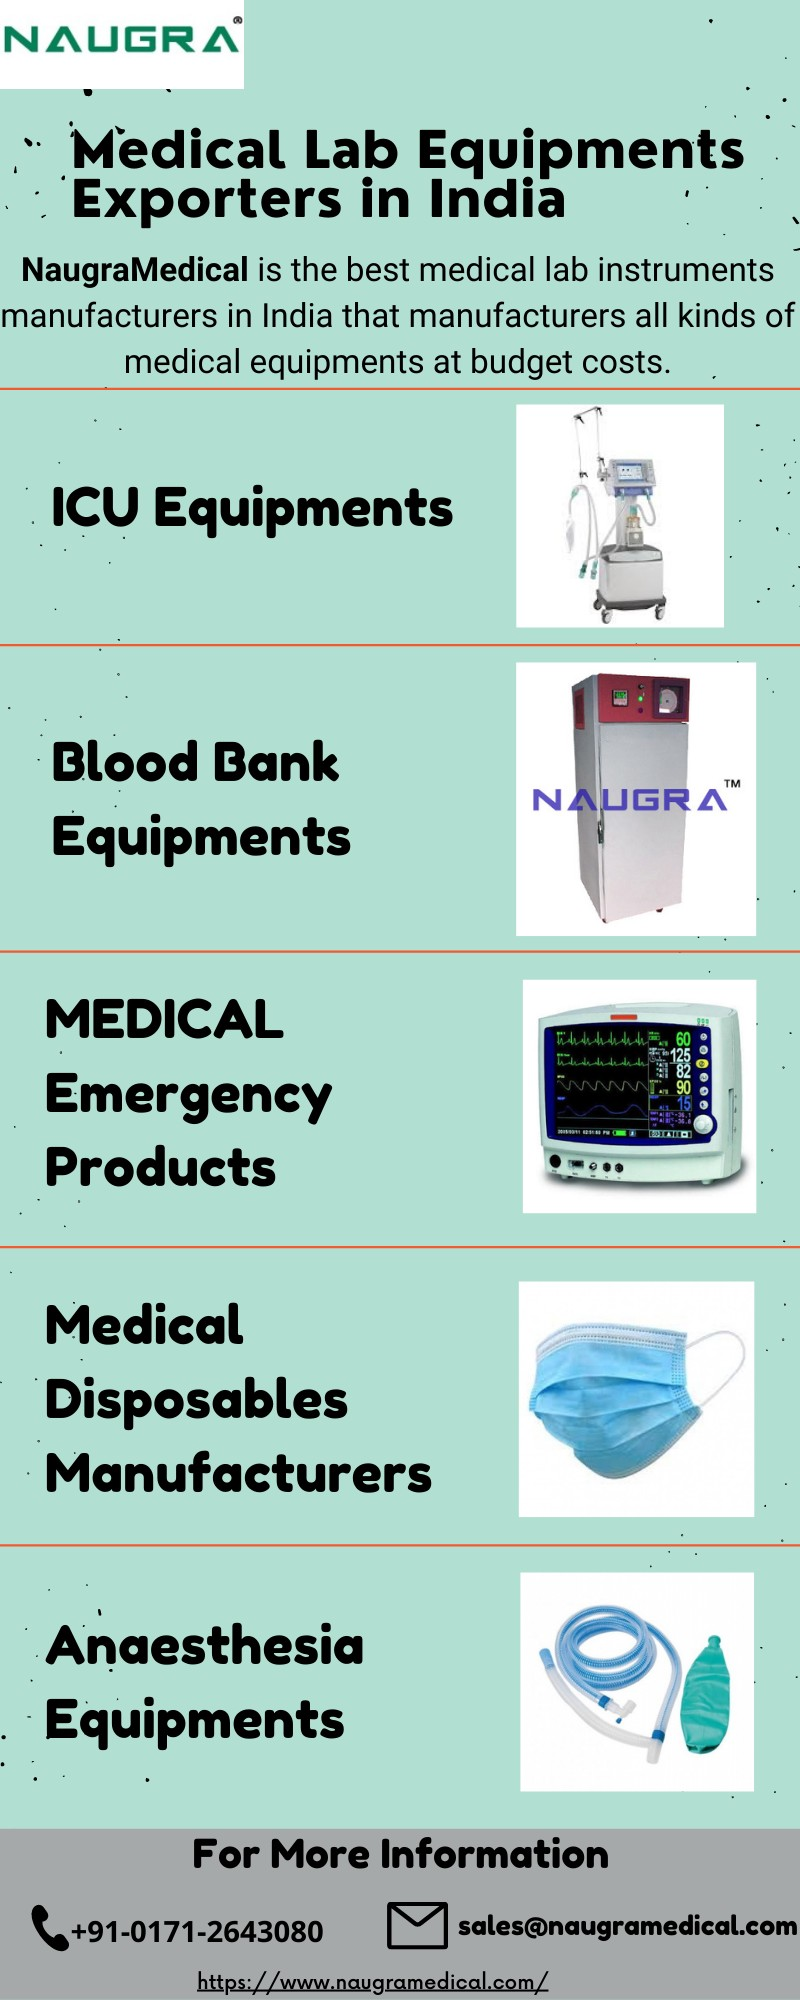 Best Medical Lab Equipments Exporters in India